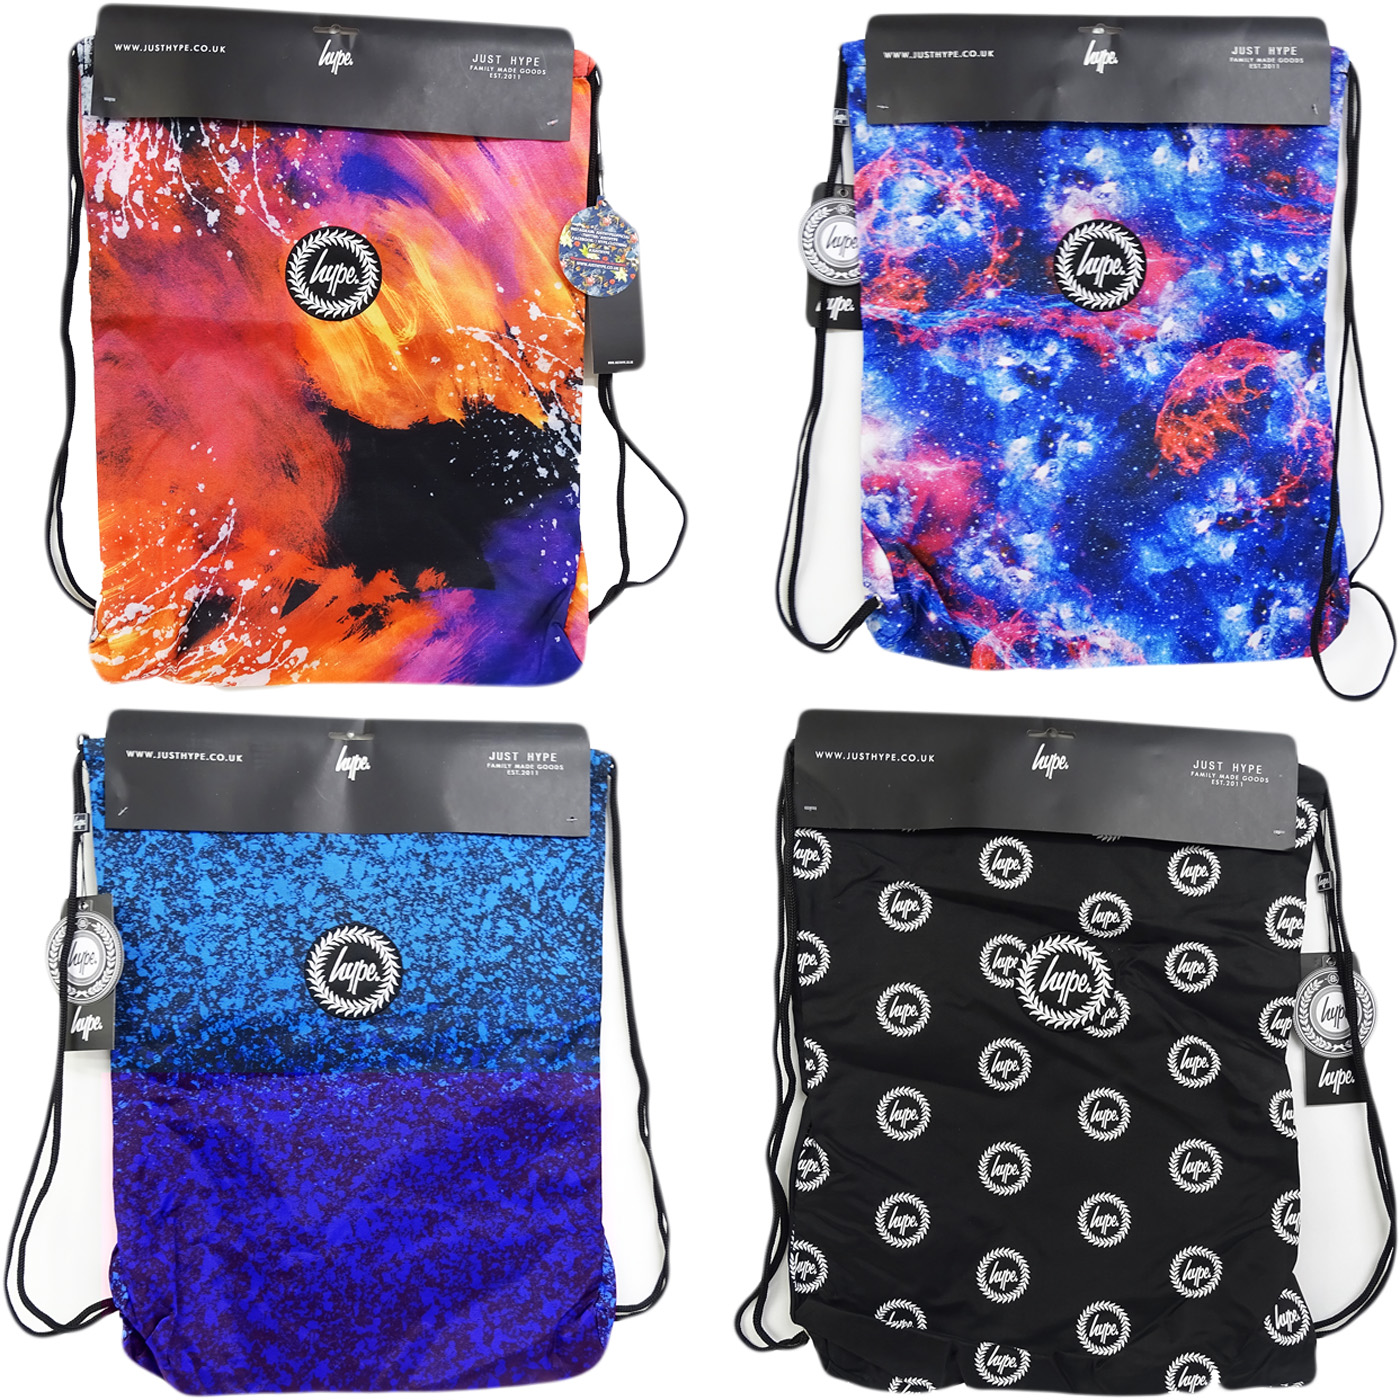 89cd4ce545 Details about Hype Drawstring Bag   All Over Print   Space Graphic Bag -